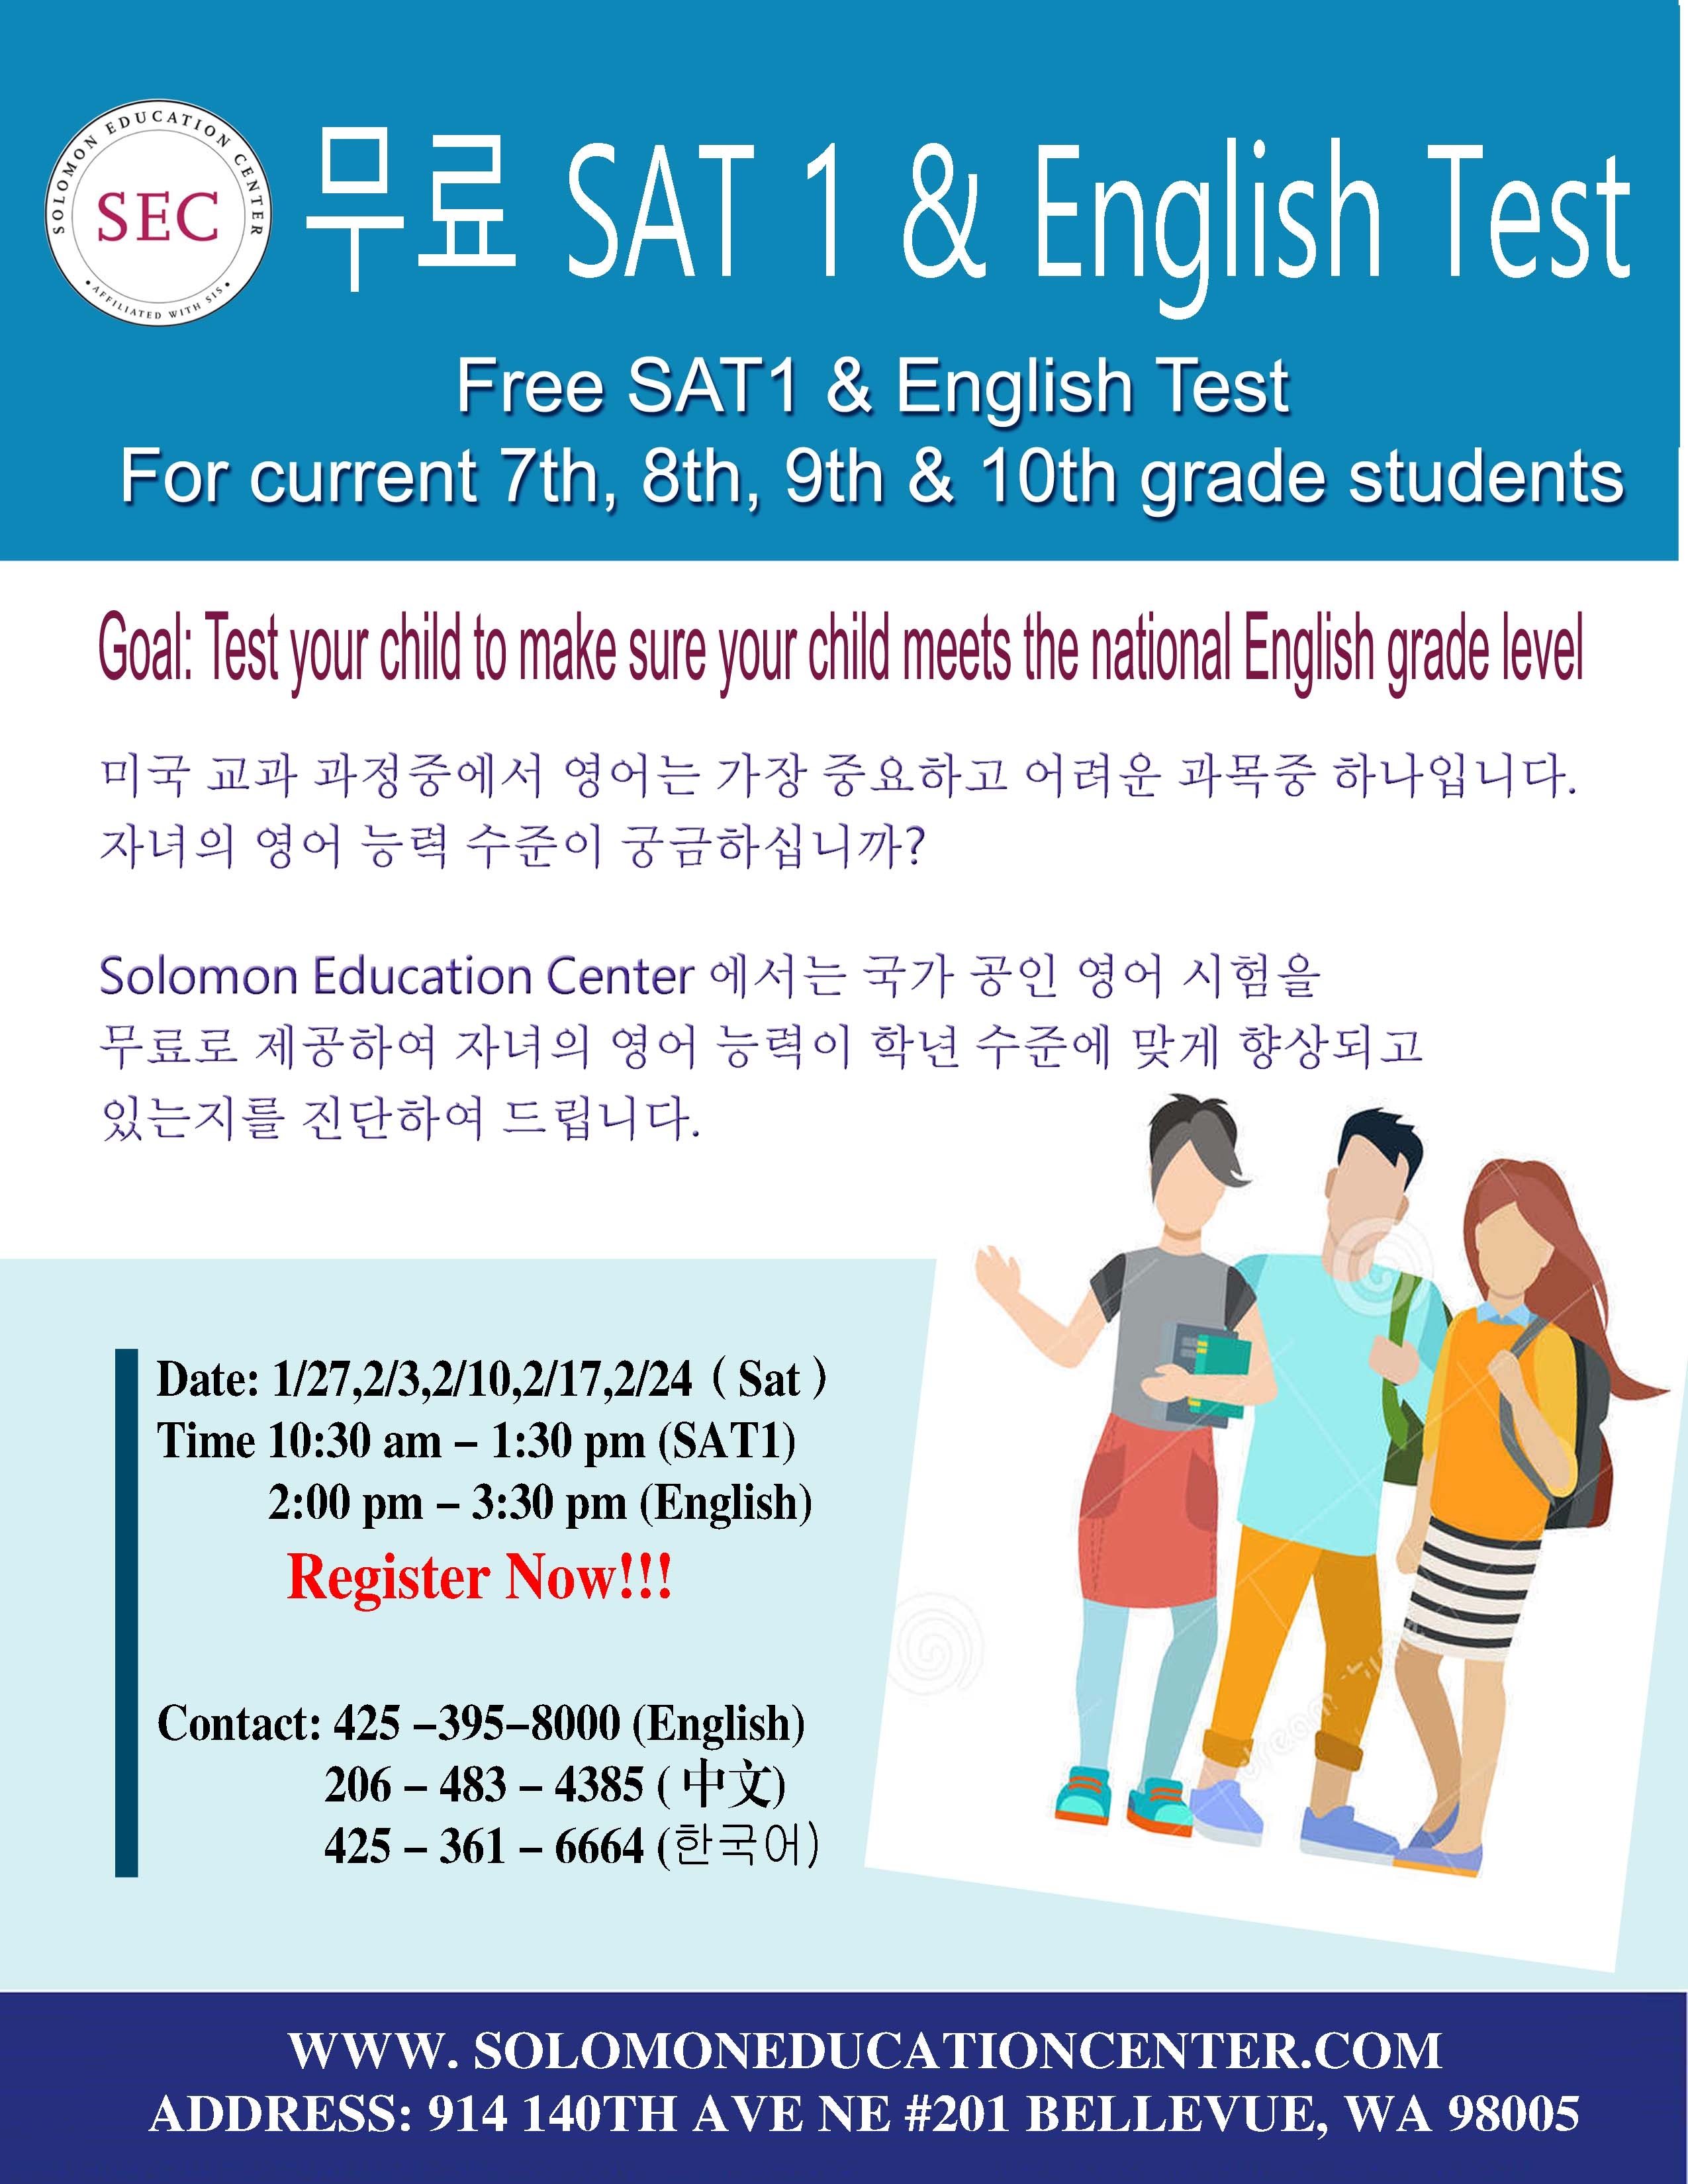 small size flyer ESL englsih and SAT FREE in korean.jpg